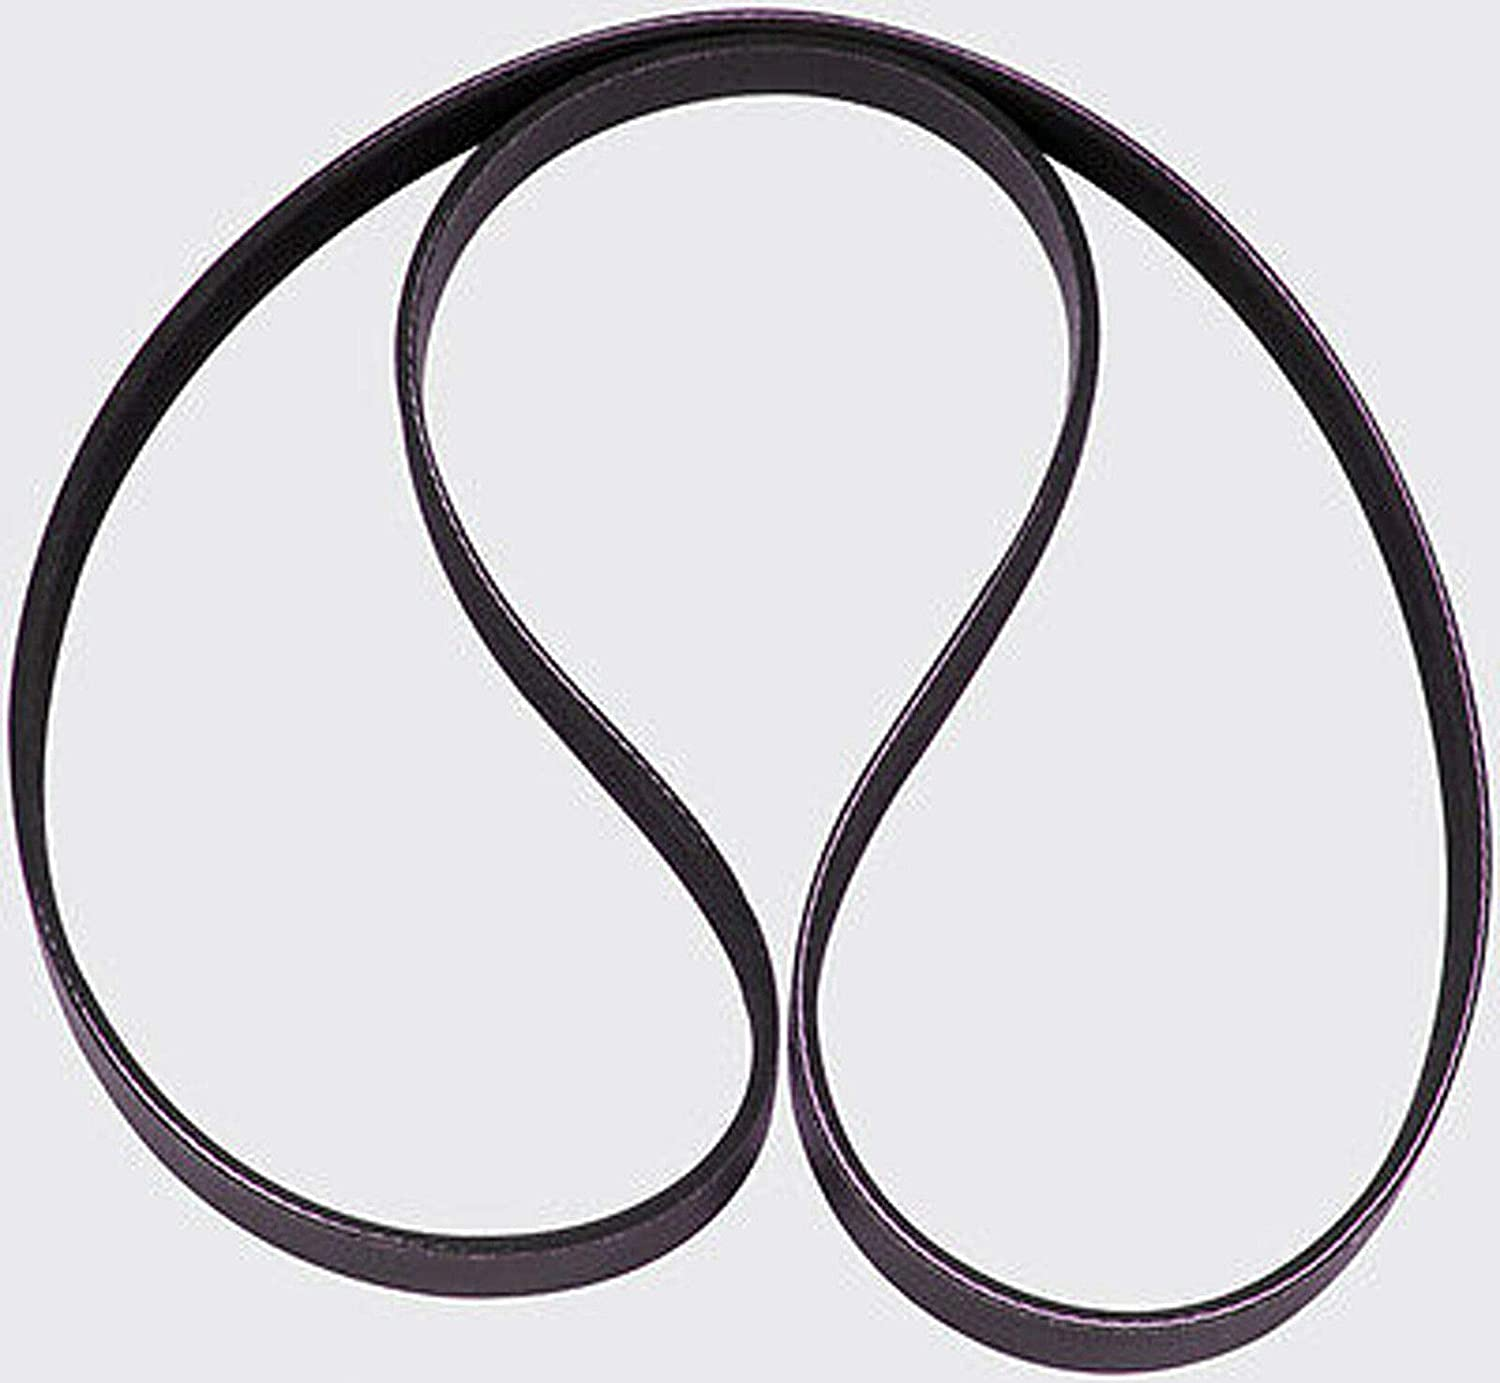 New Replacement BELT for M 10-320 belt# C10-995 Bandsaw Band Saw